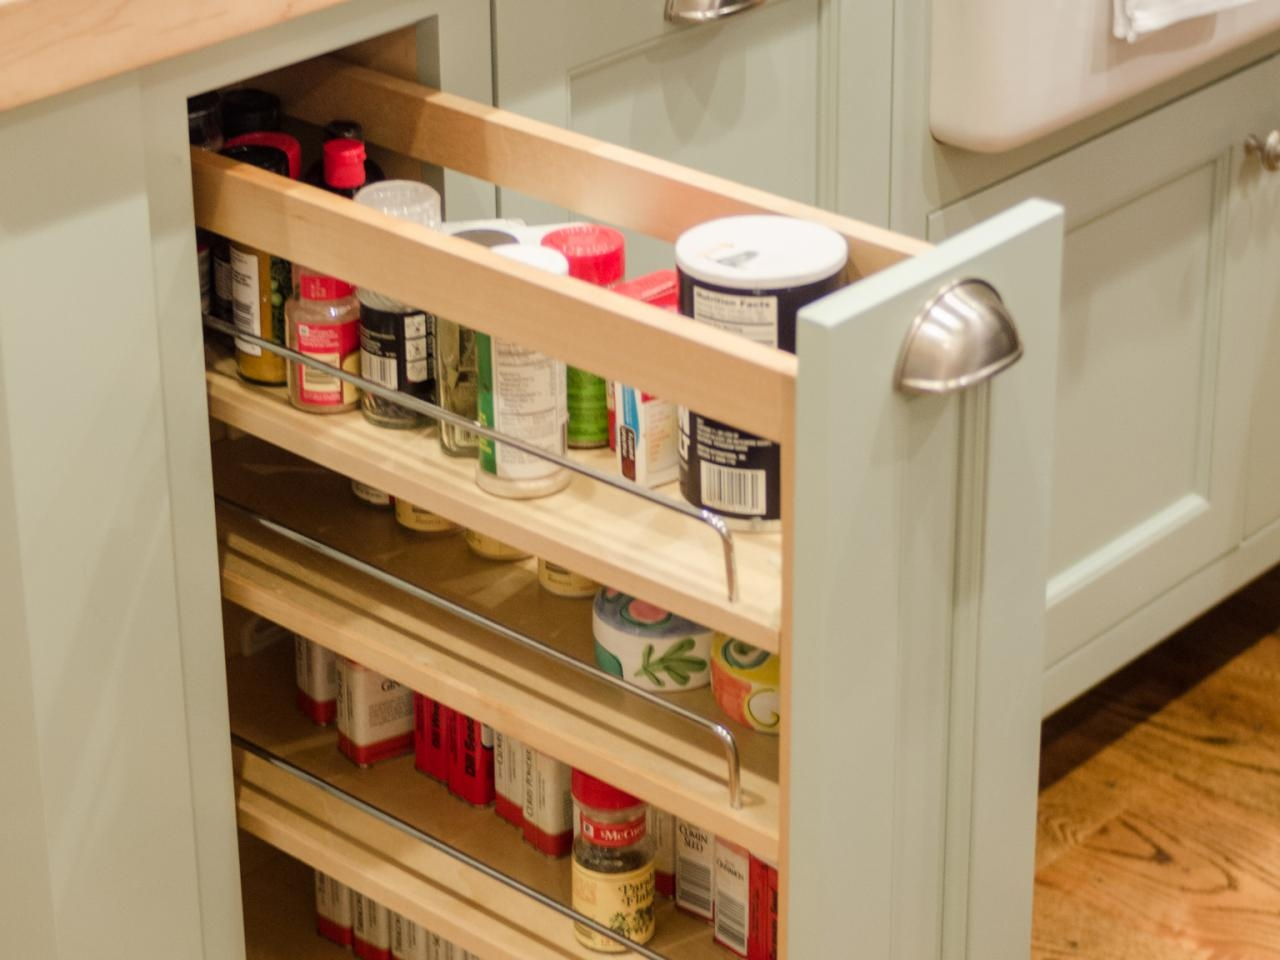 Spice Racks For Kitchen Cabinets Pictures Options Tips Ideas Regarding Storage Racks For Kitchen Cupboards (Image 22 of 25)